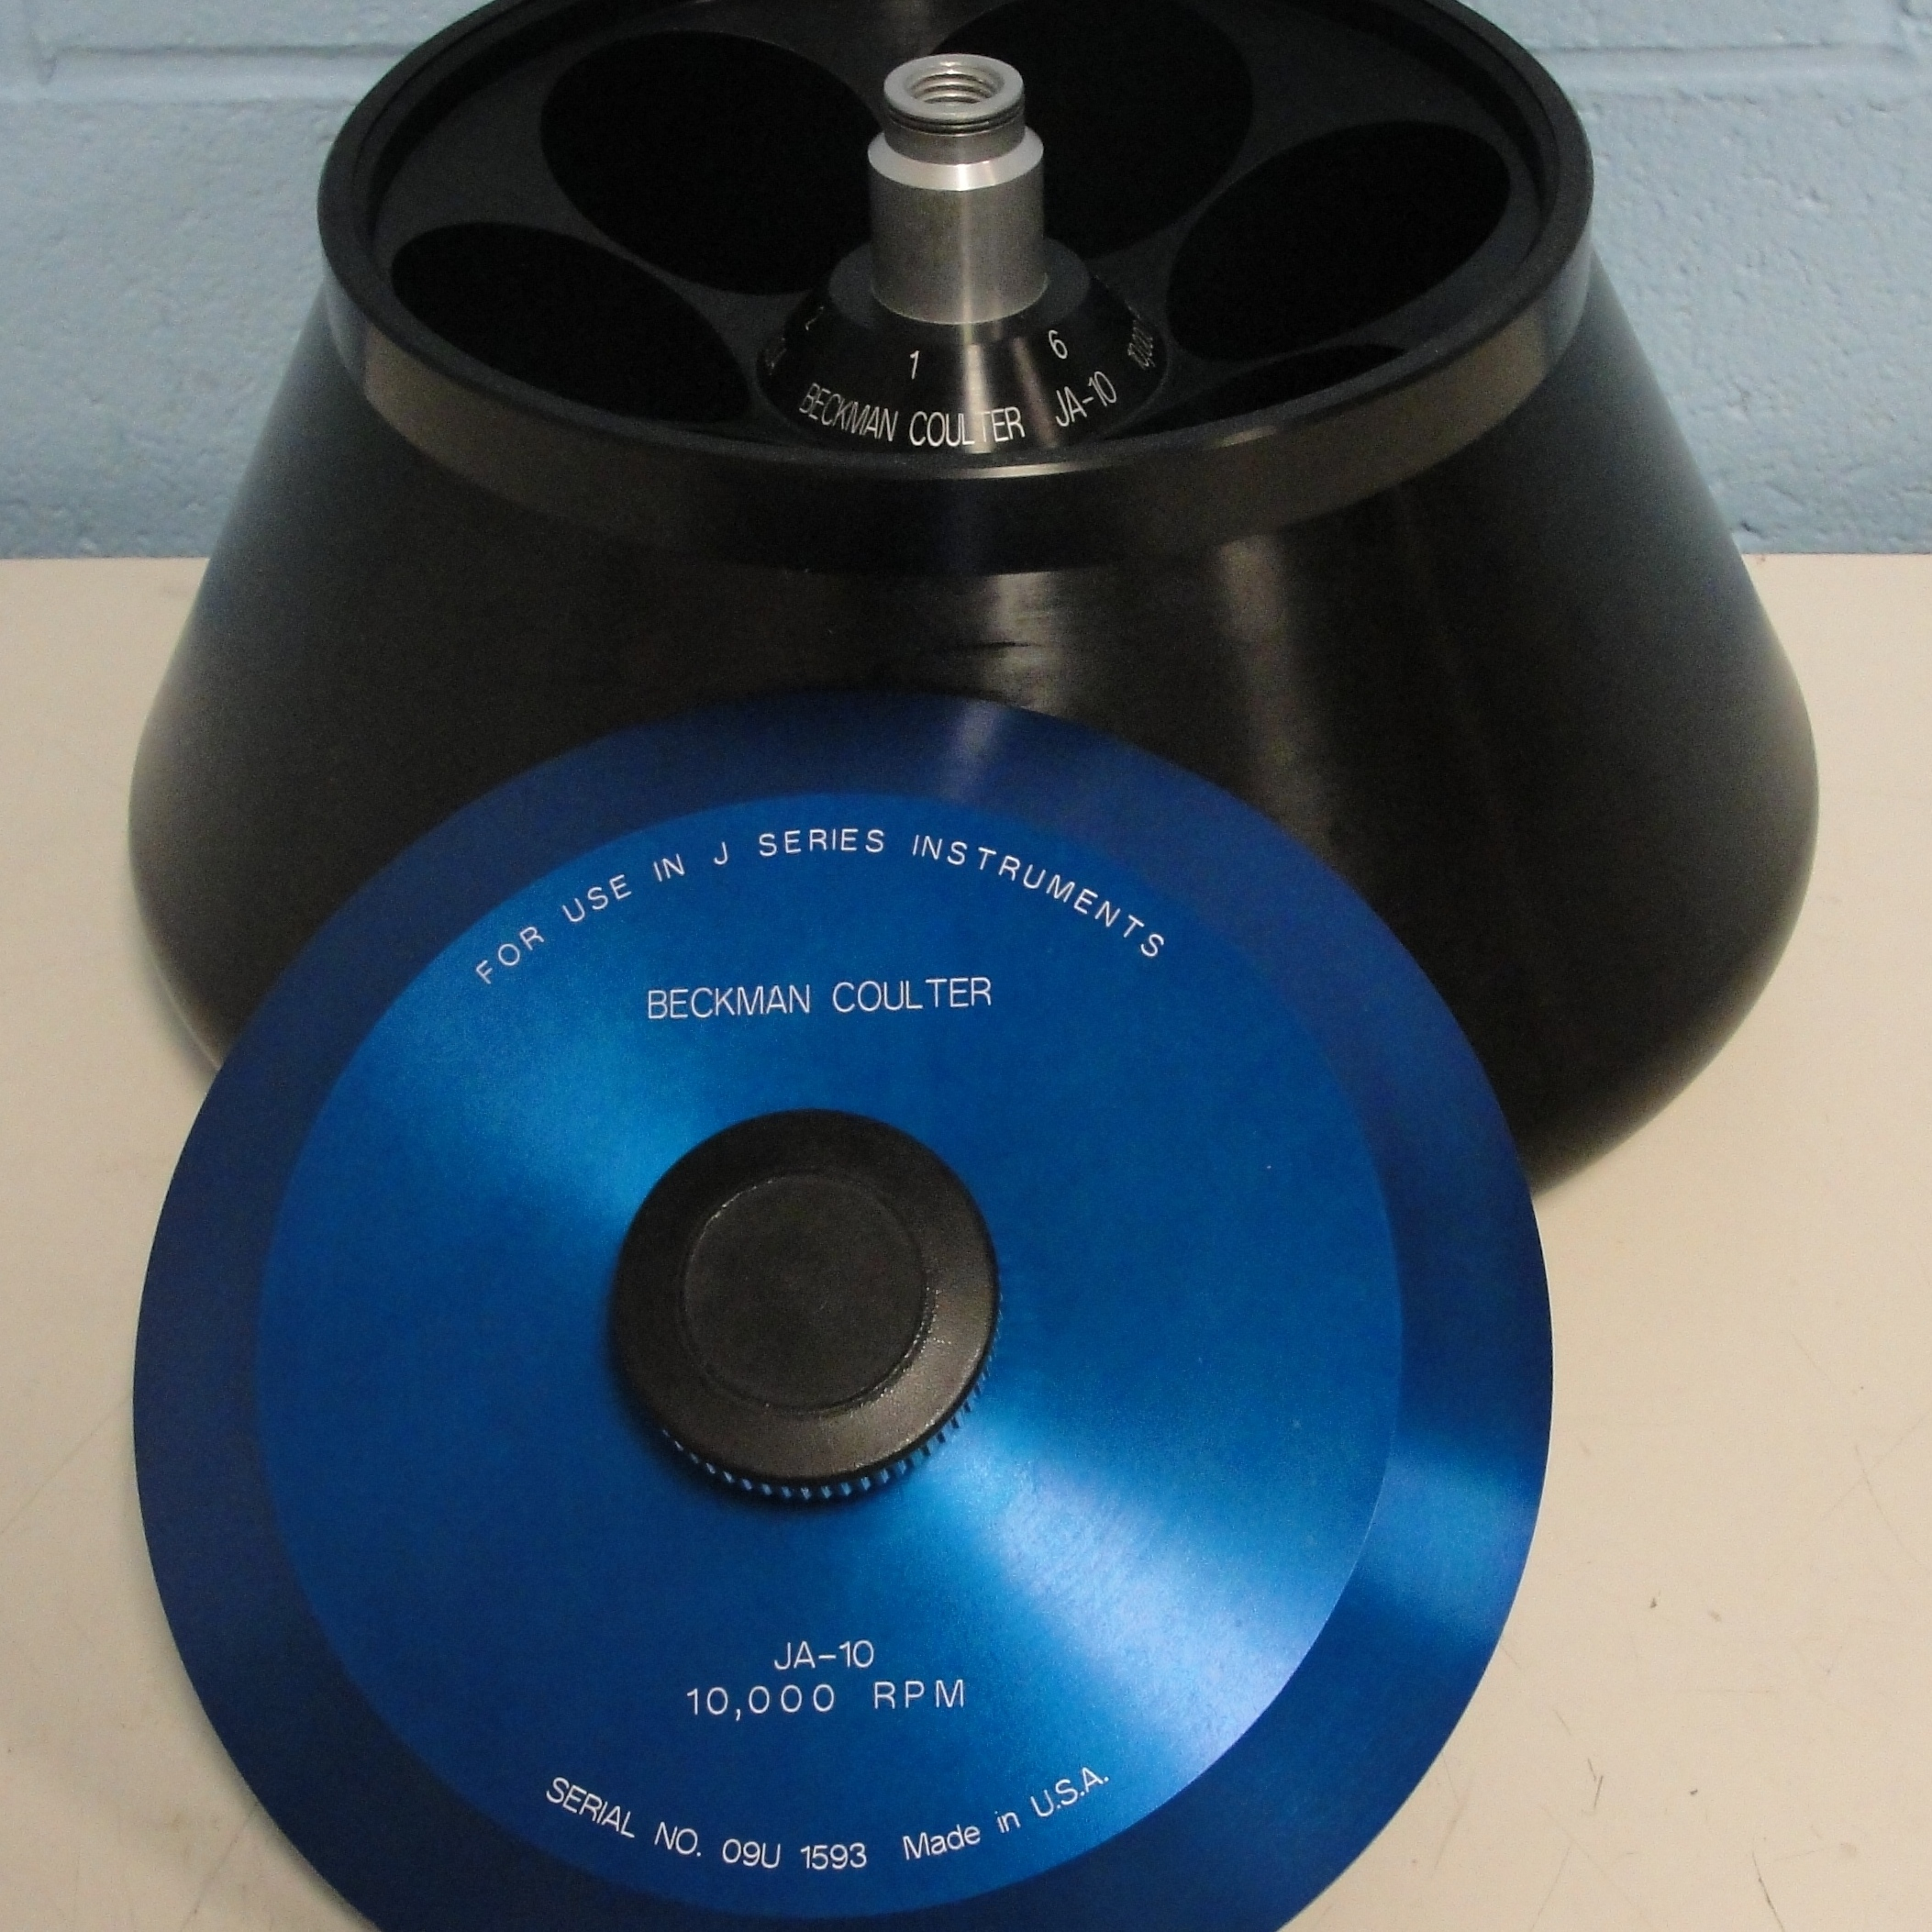 Beckman Coulter JA-10 Fixed Angle Rotor Image